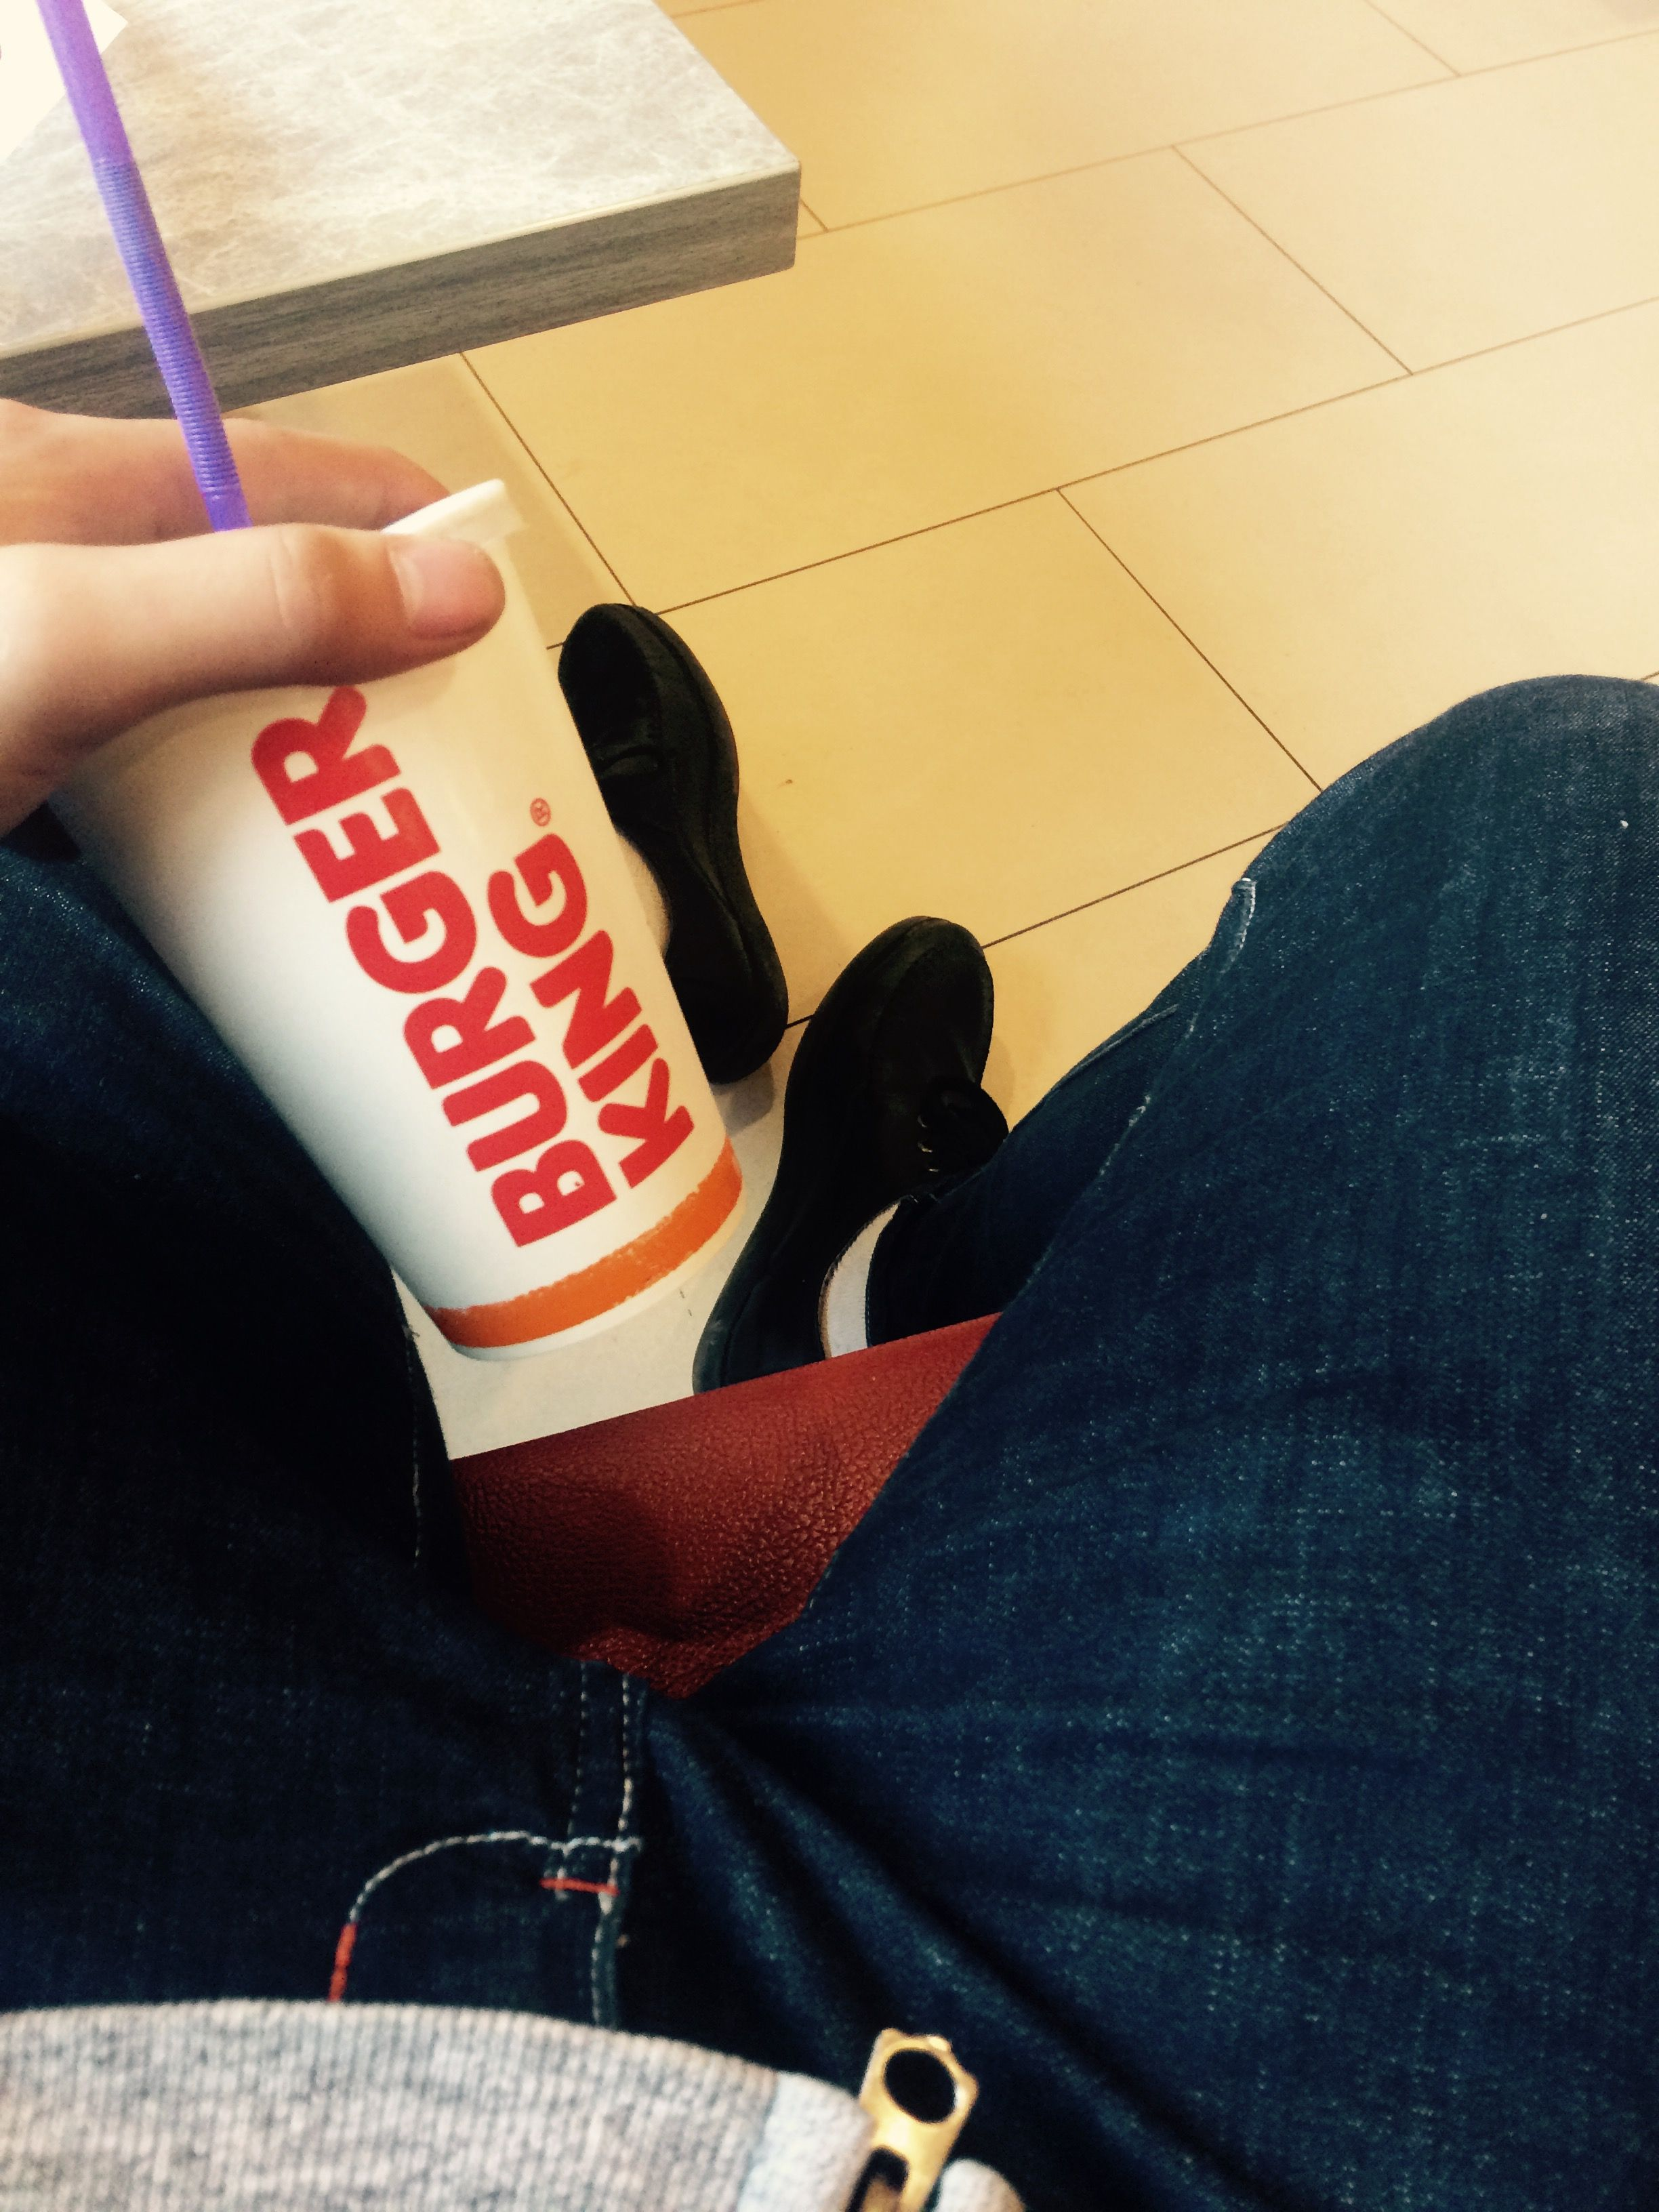 Pin by Өөнөө Д.Д on My life style Dunkin donuts coffee